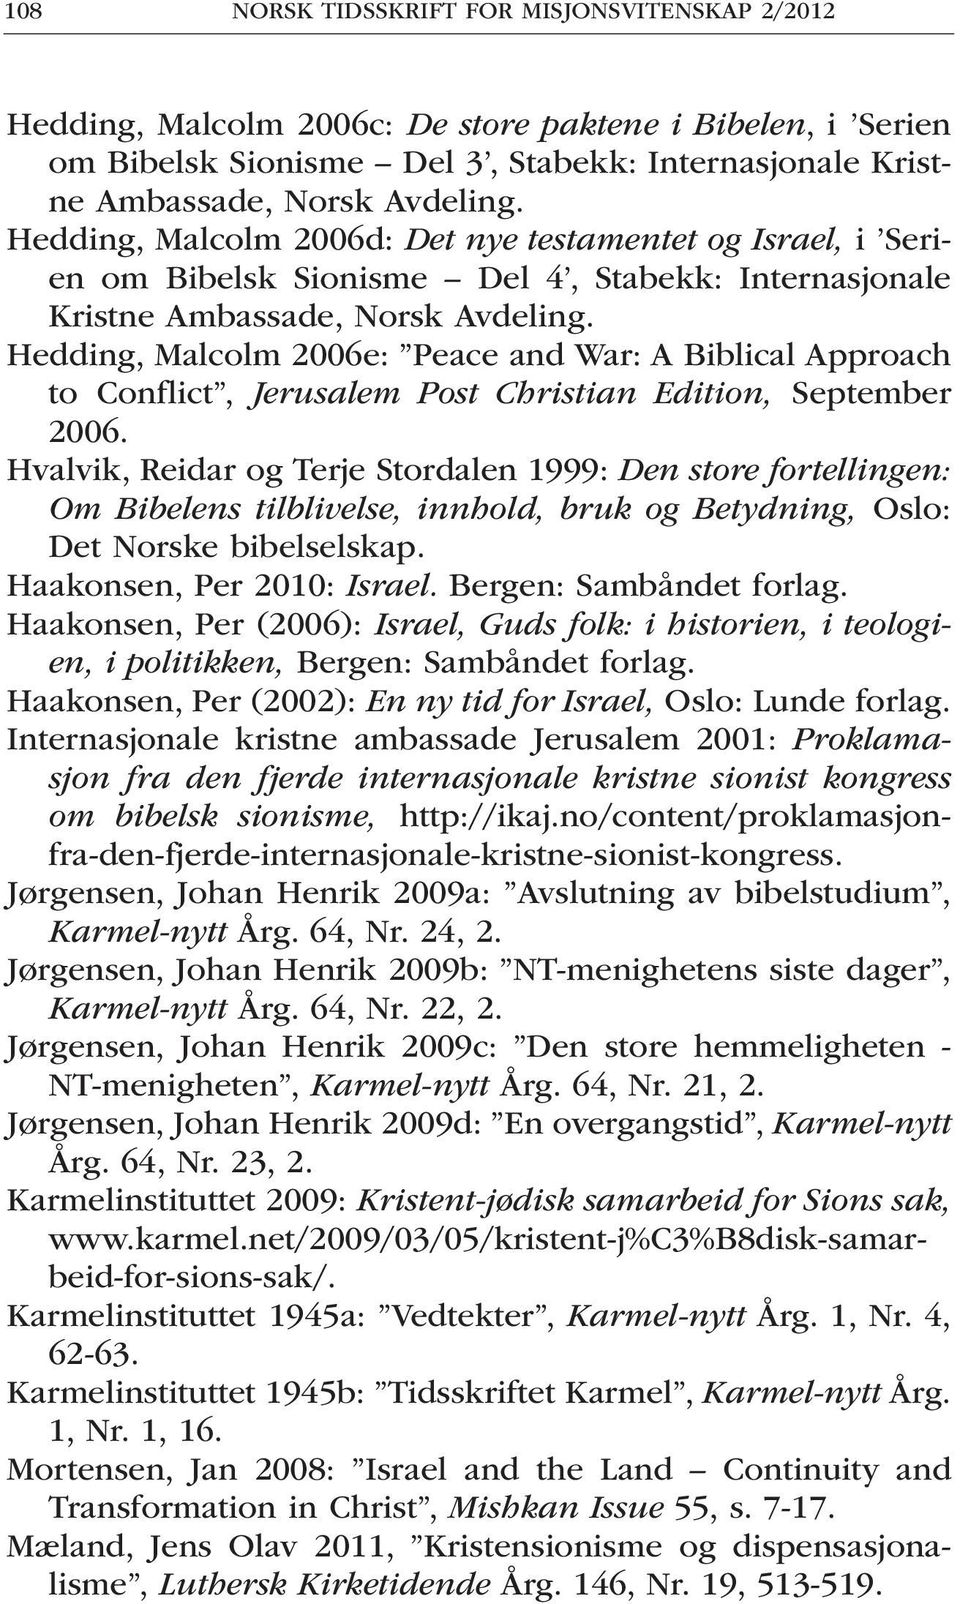 Hedding, Malcolm 2006e: Peace and War: A Biblical Approach to Conflict, Jerusalem Post Christian Edition, September 2006.